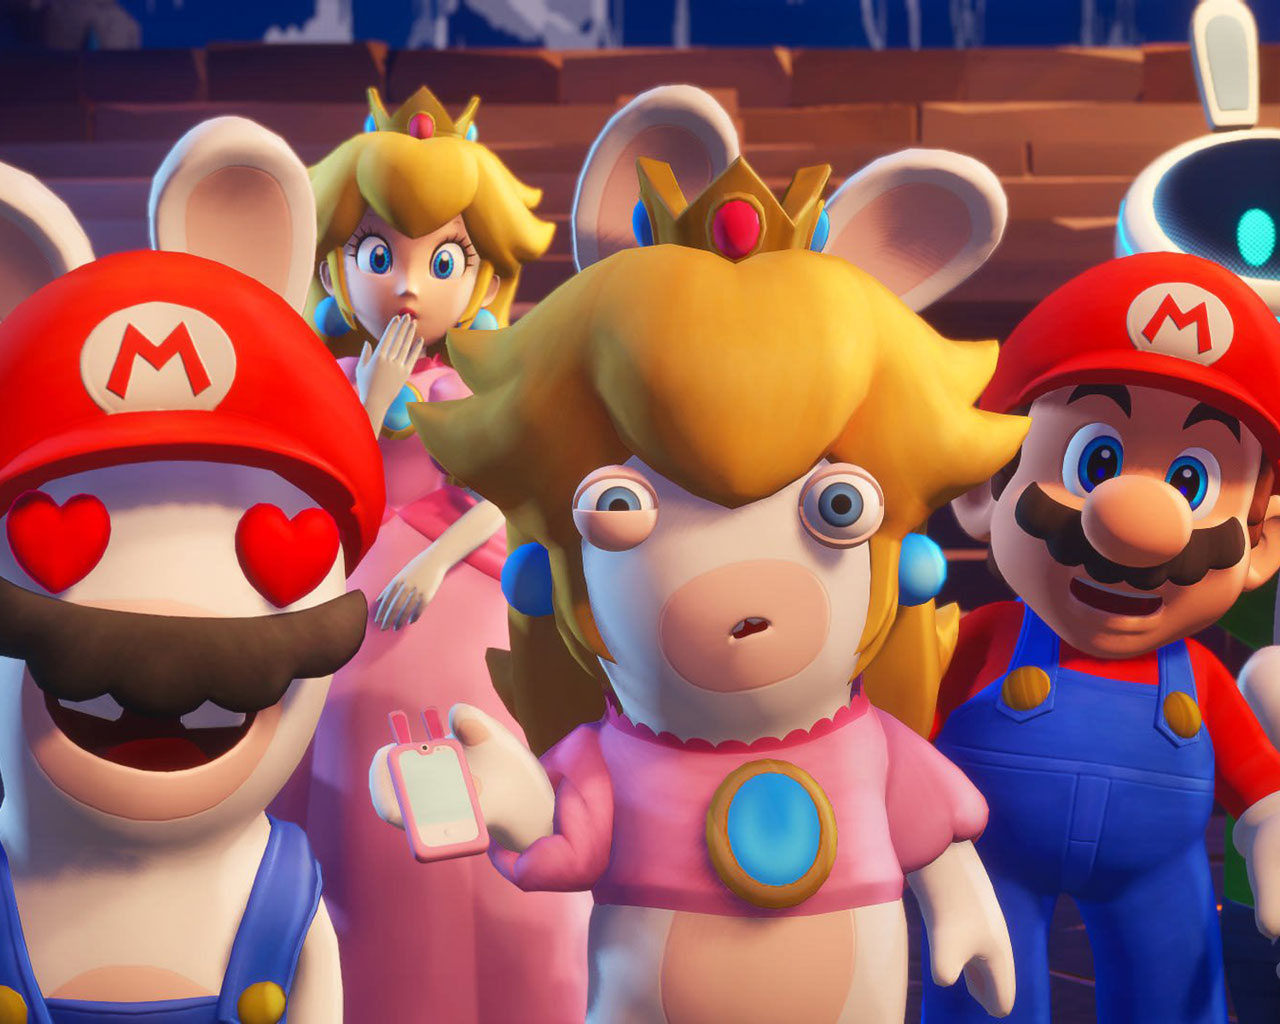 Free Mario + Rabbids: Sparks of Hope Wallpaper in 1280x1024